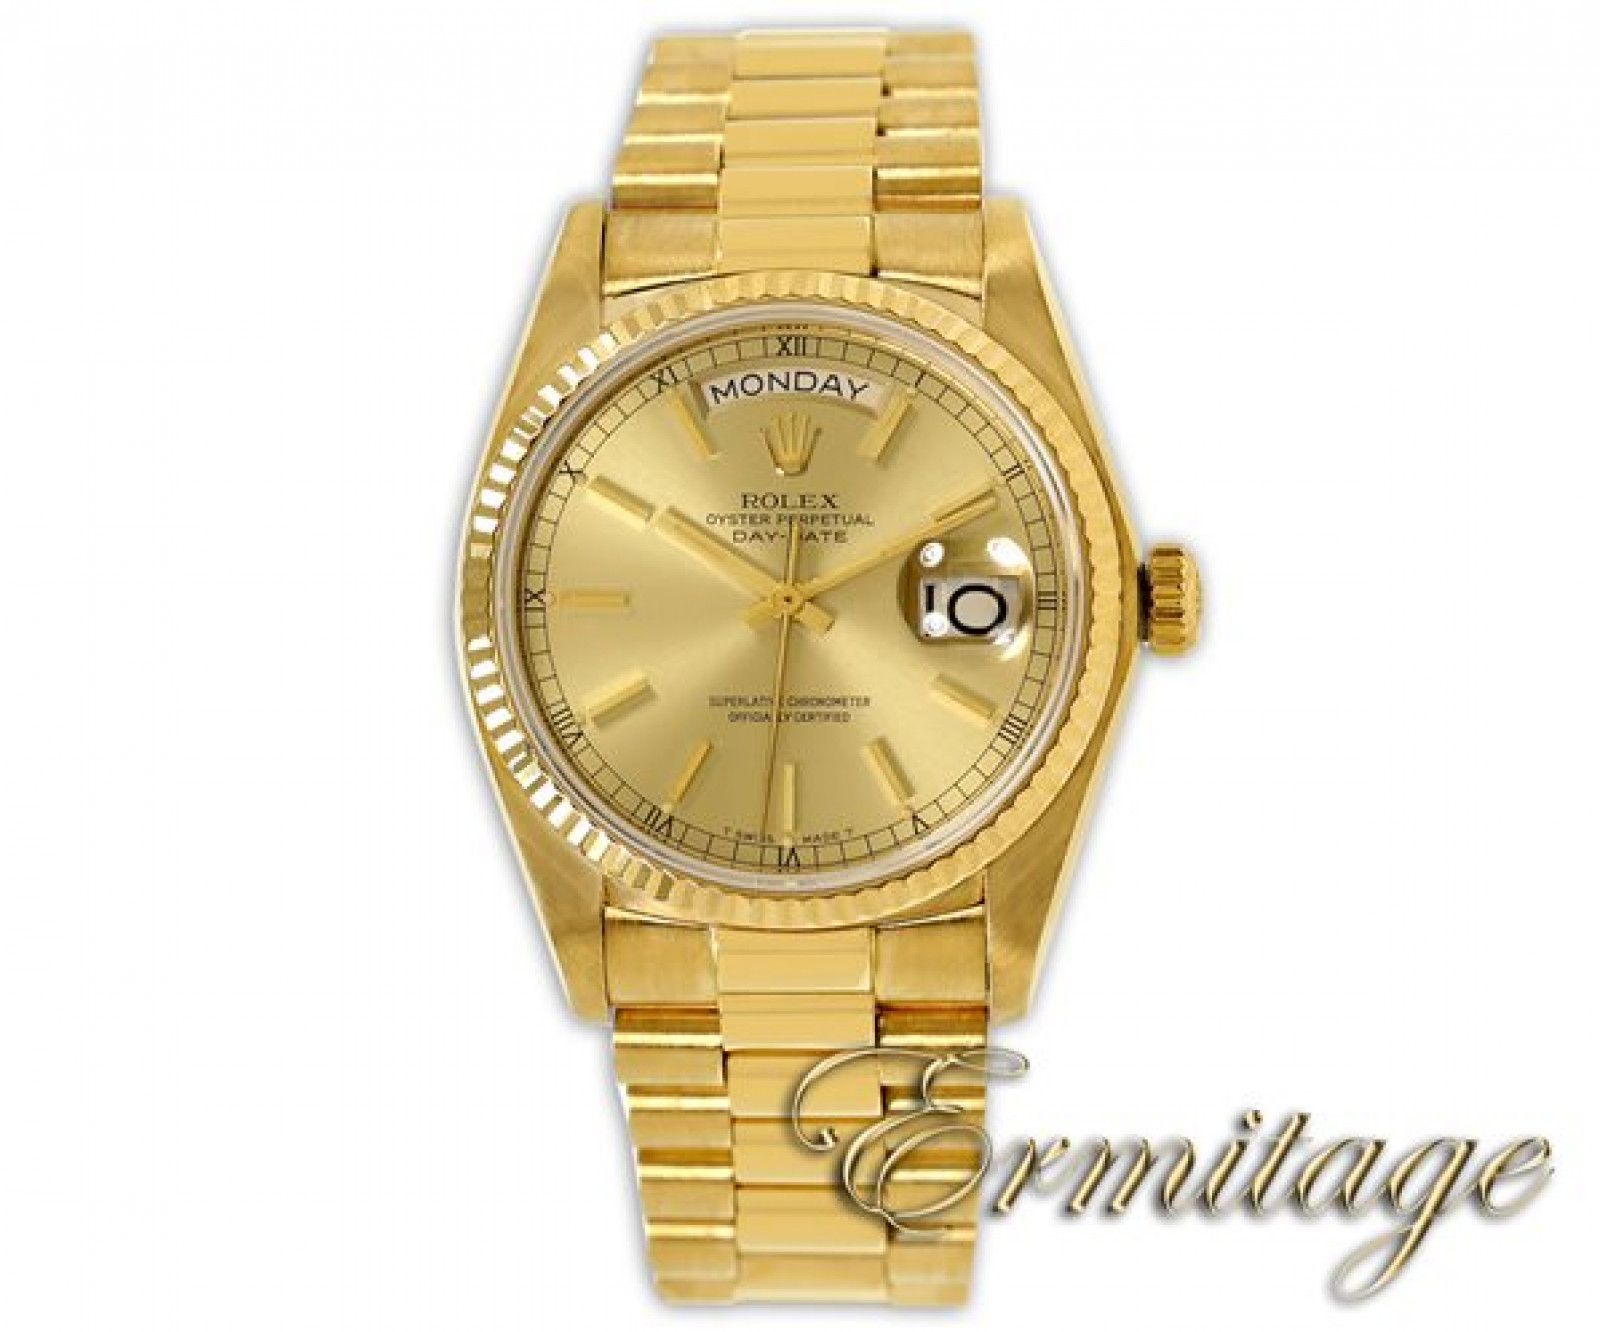 Pre-Owned Rolex Day-Date 18038 Gold Champagne